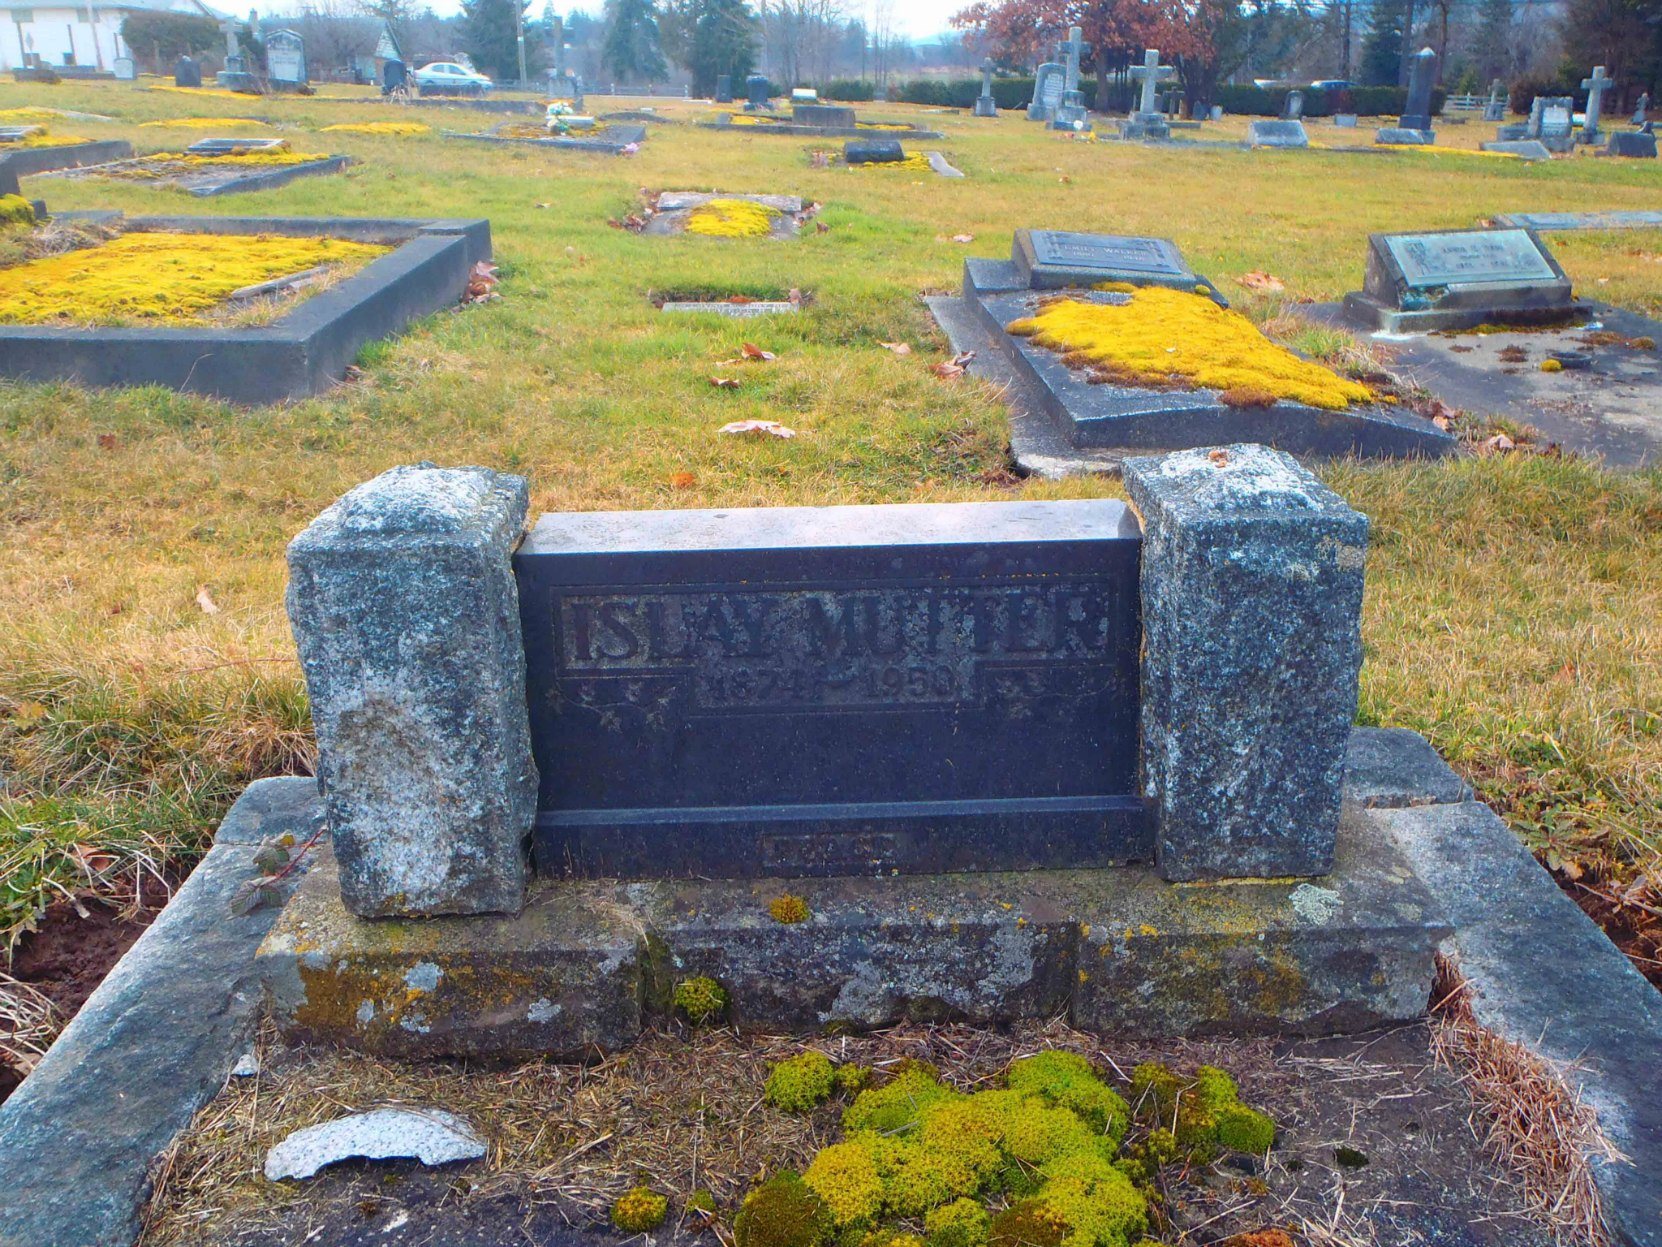 J. Islay Mutter headstone, St. Mary's Somenos Anglican Cemetery, North Cowichan